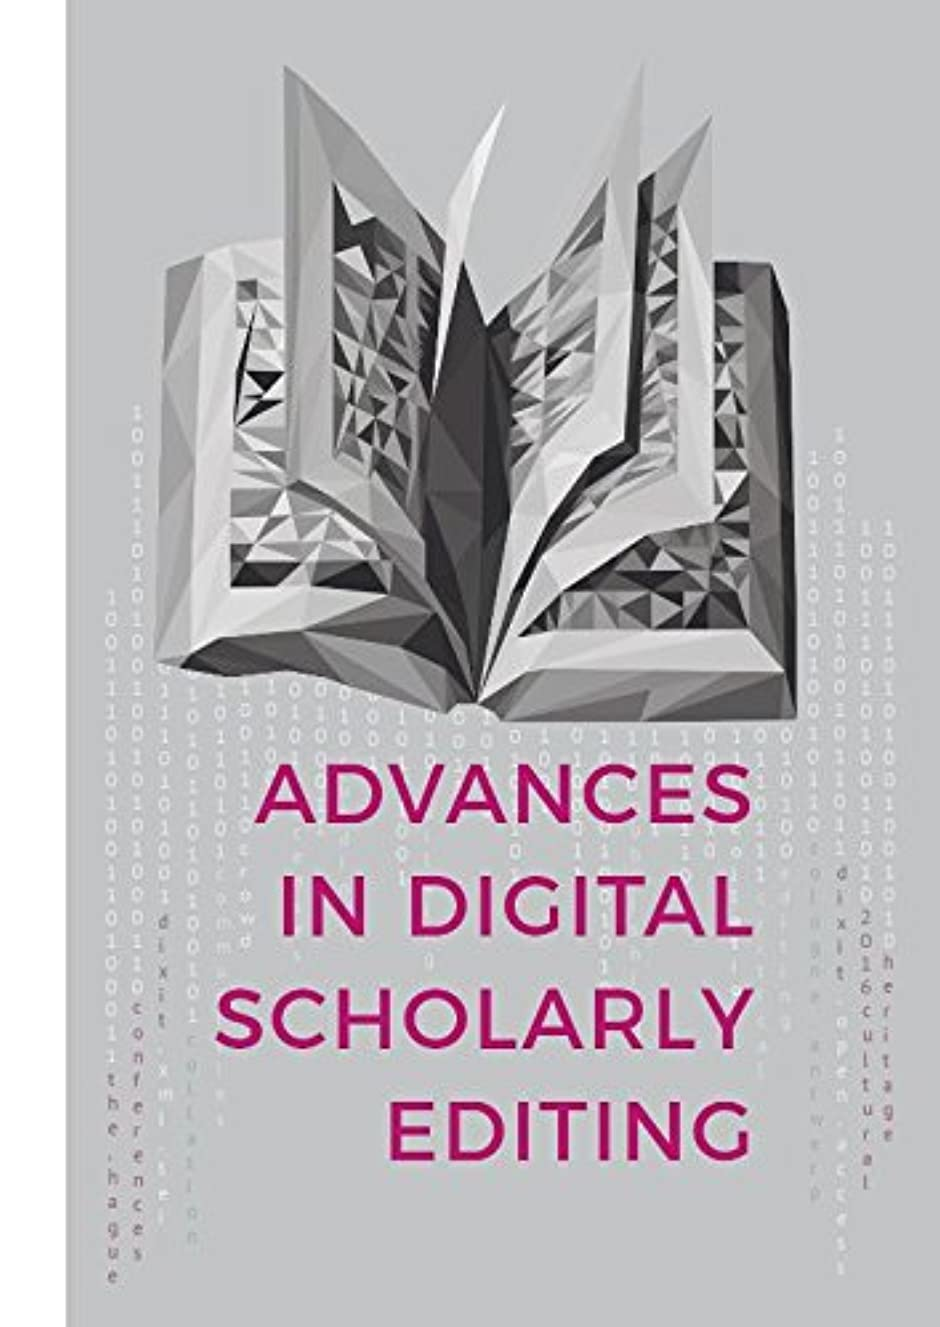 Advances in Digital Scholarly Editing: Papers presented at the DiXiT conferences in The Hague, Cologne, and Antwerp